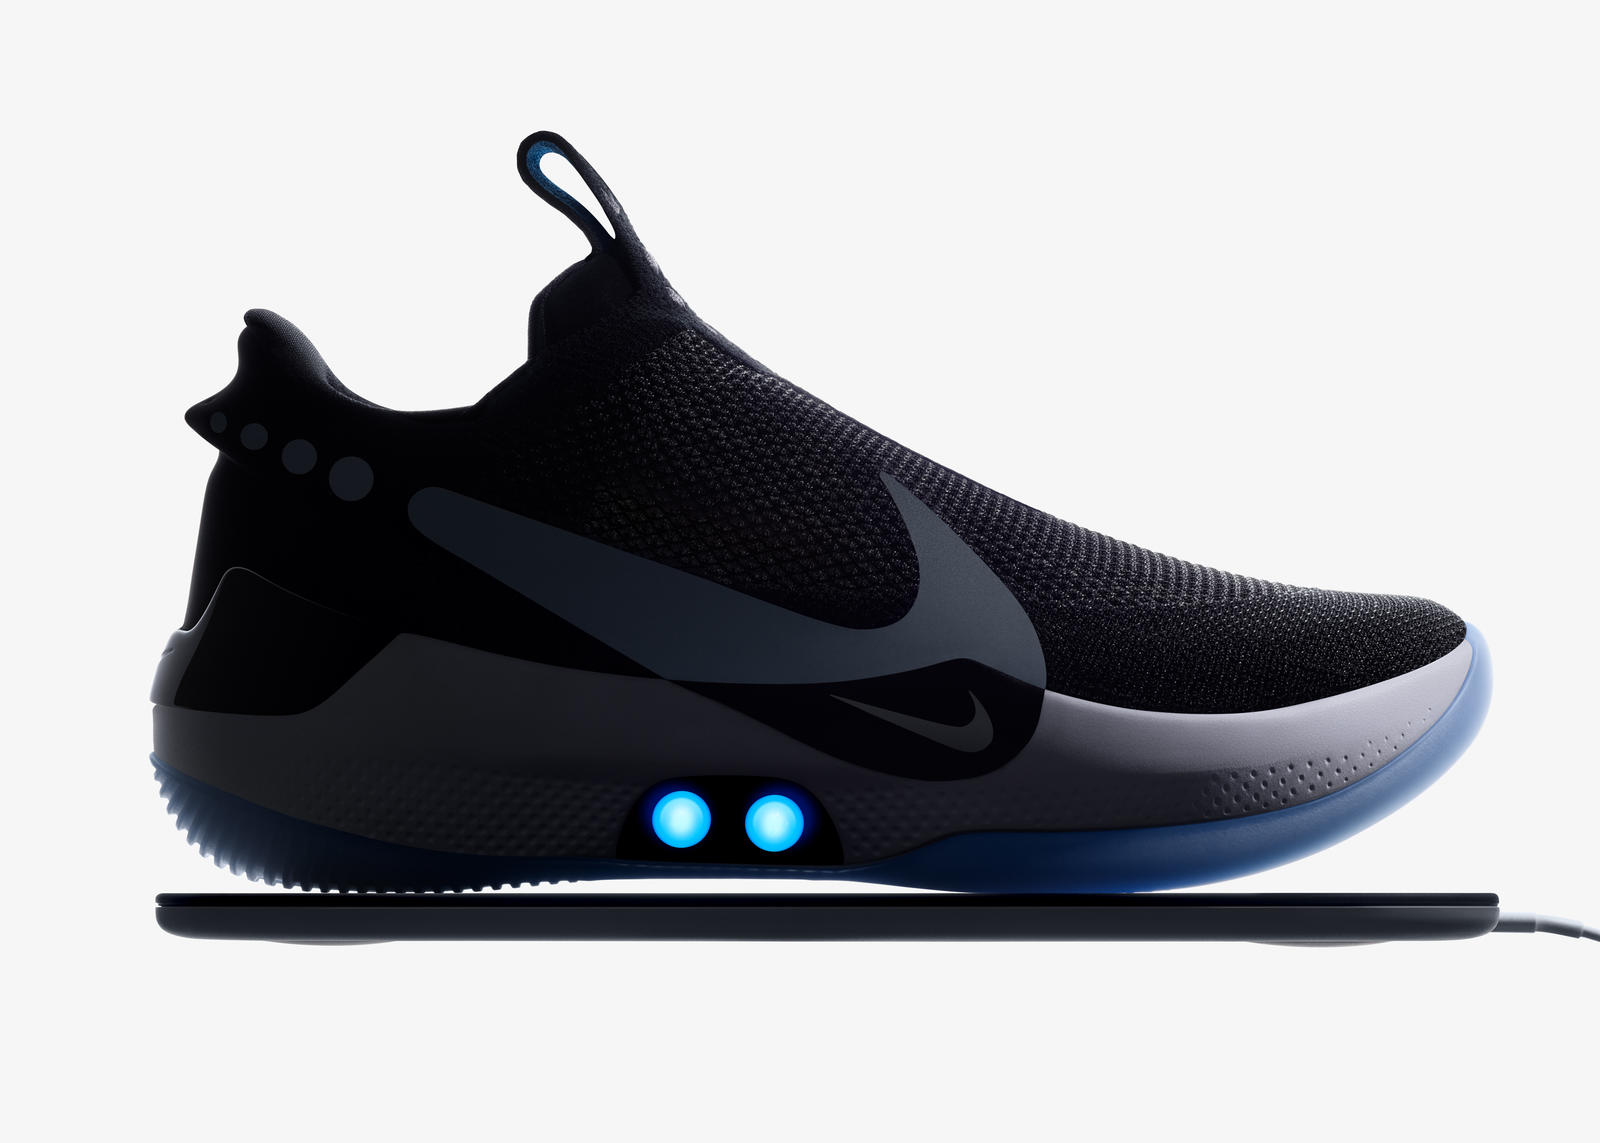 81957dc3090ae Introducing the Nike Adapt BB - Nike News